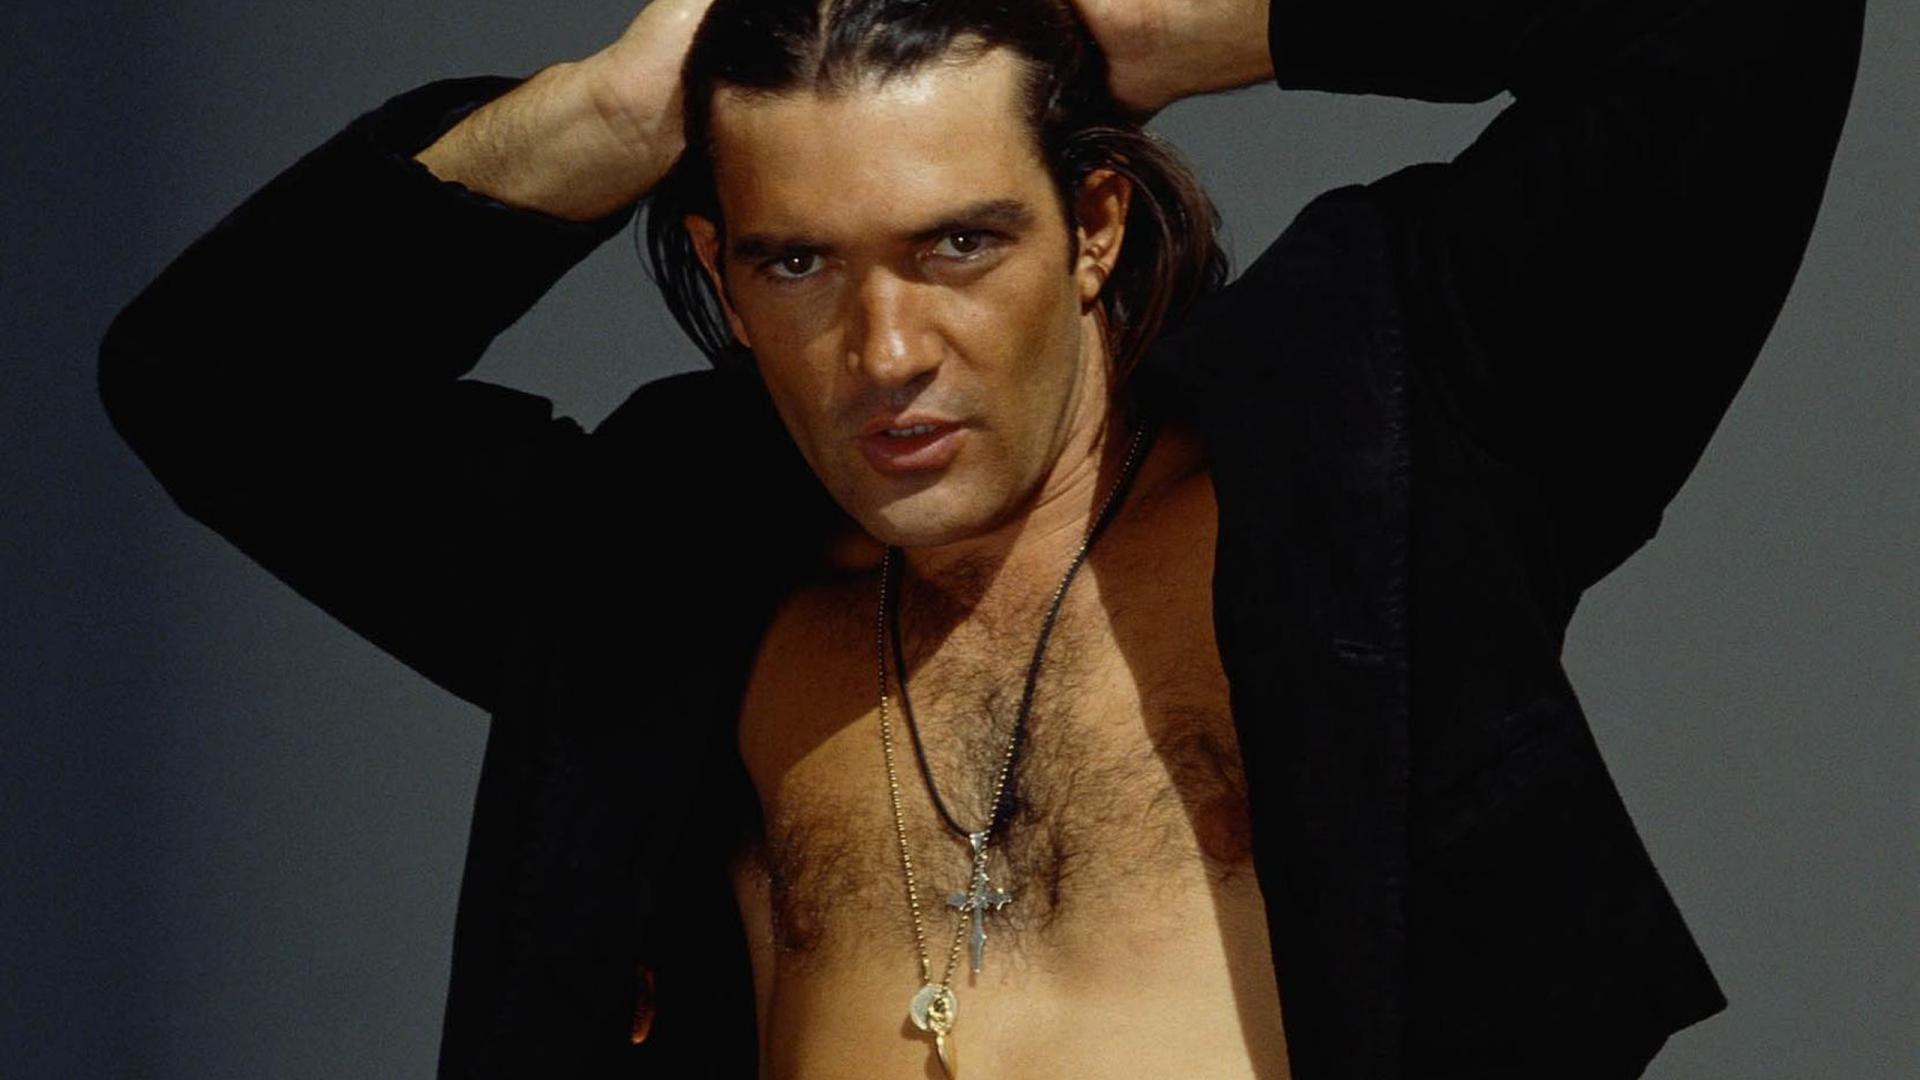 Antonio Banderas | Full HD Desktop Wallpapers 1080p Antonio Banderas